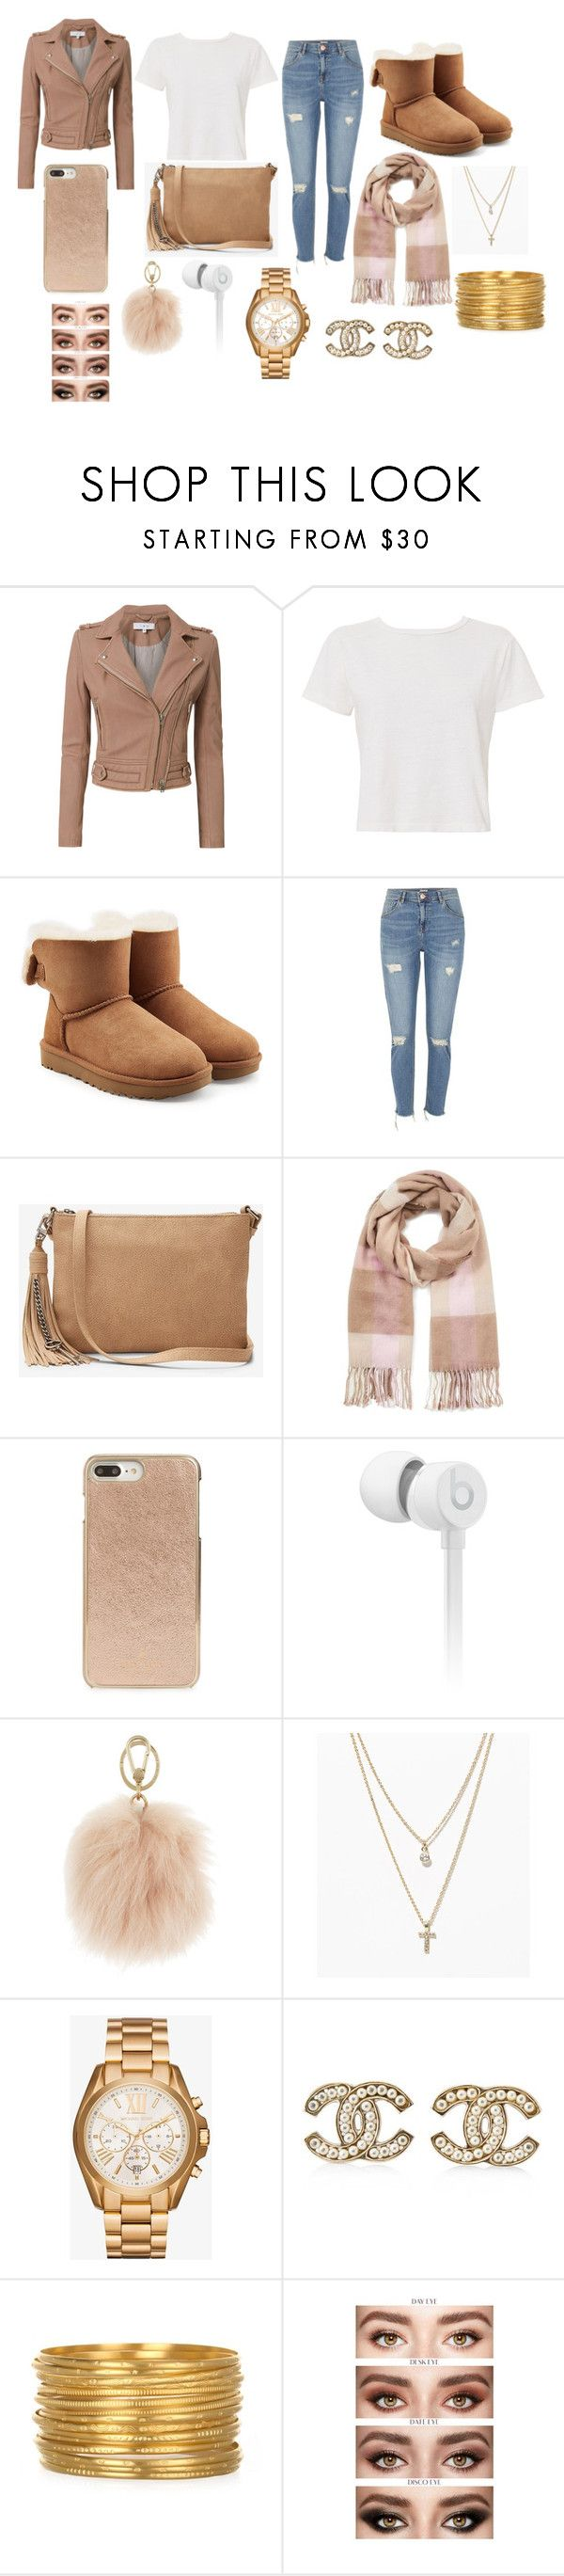 """Carnival Outfit"" by leyaatierra ❤ liked on Polyvore featuring IRO, RE/DONE, UGG, River Island, Express, Miss Selfridge, Kate Spade, Beats by Dr. Dre, Furla and LOFT"